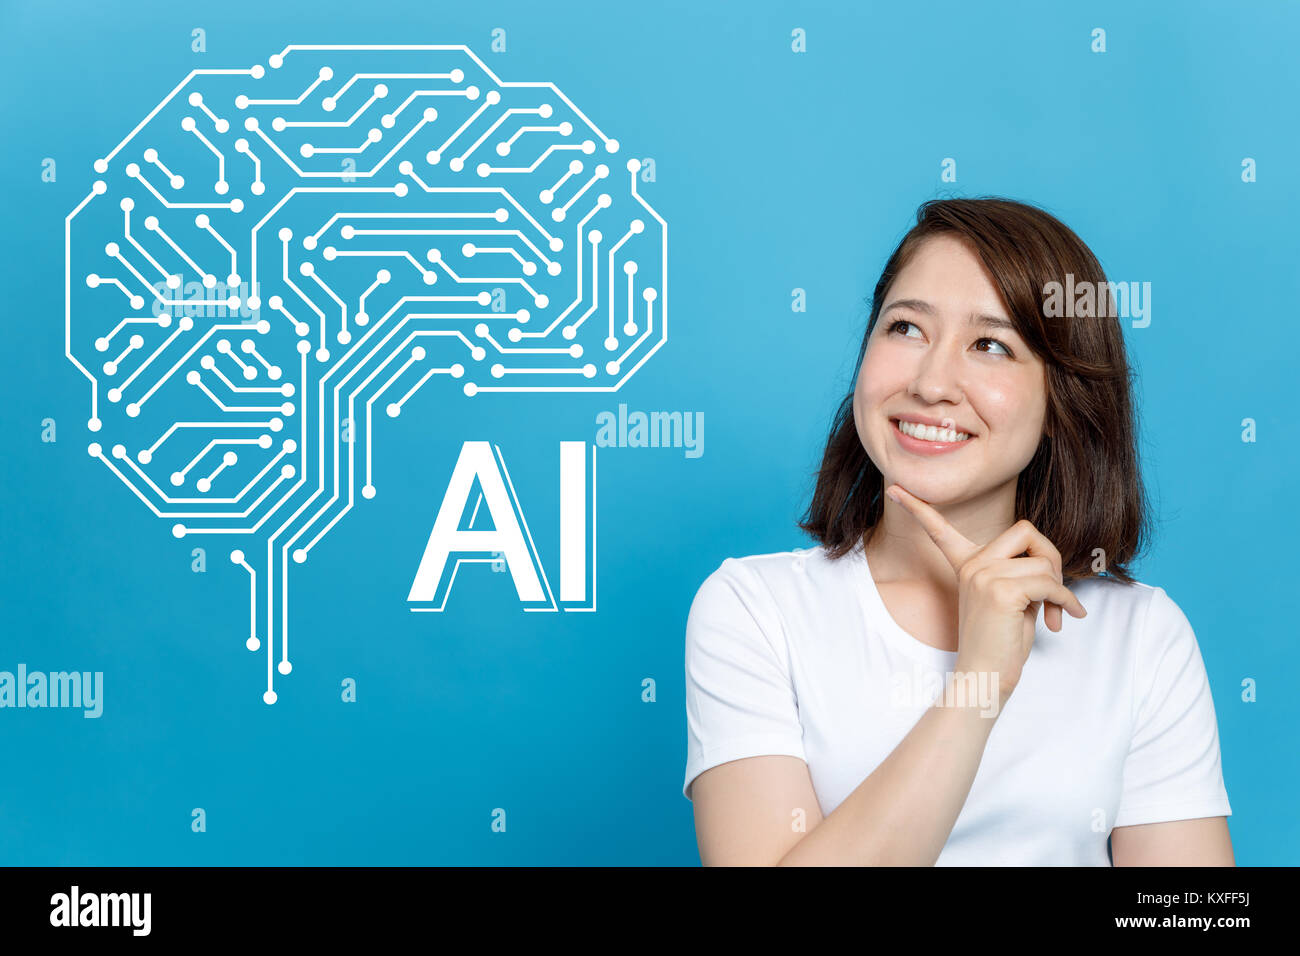 AI (artificial intelligence) concept. - Stock Image